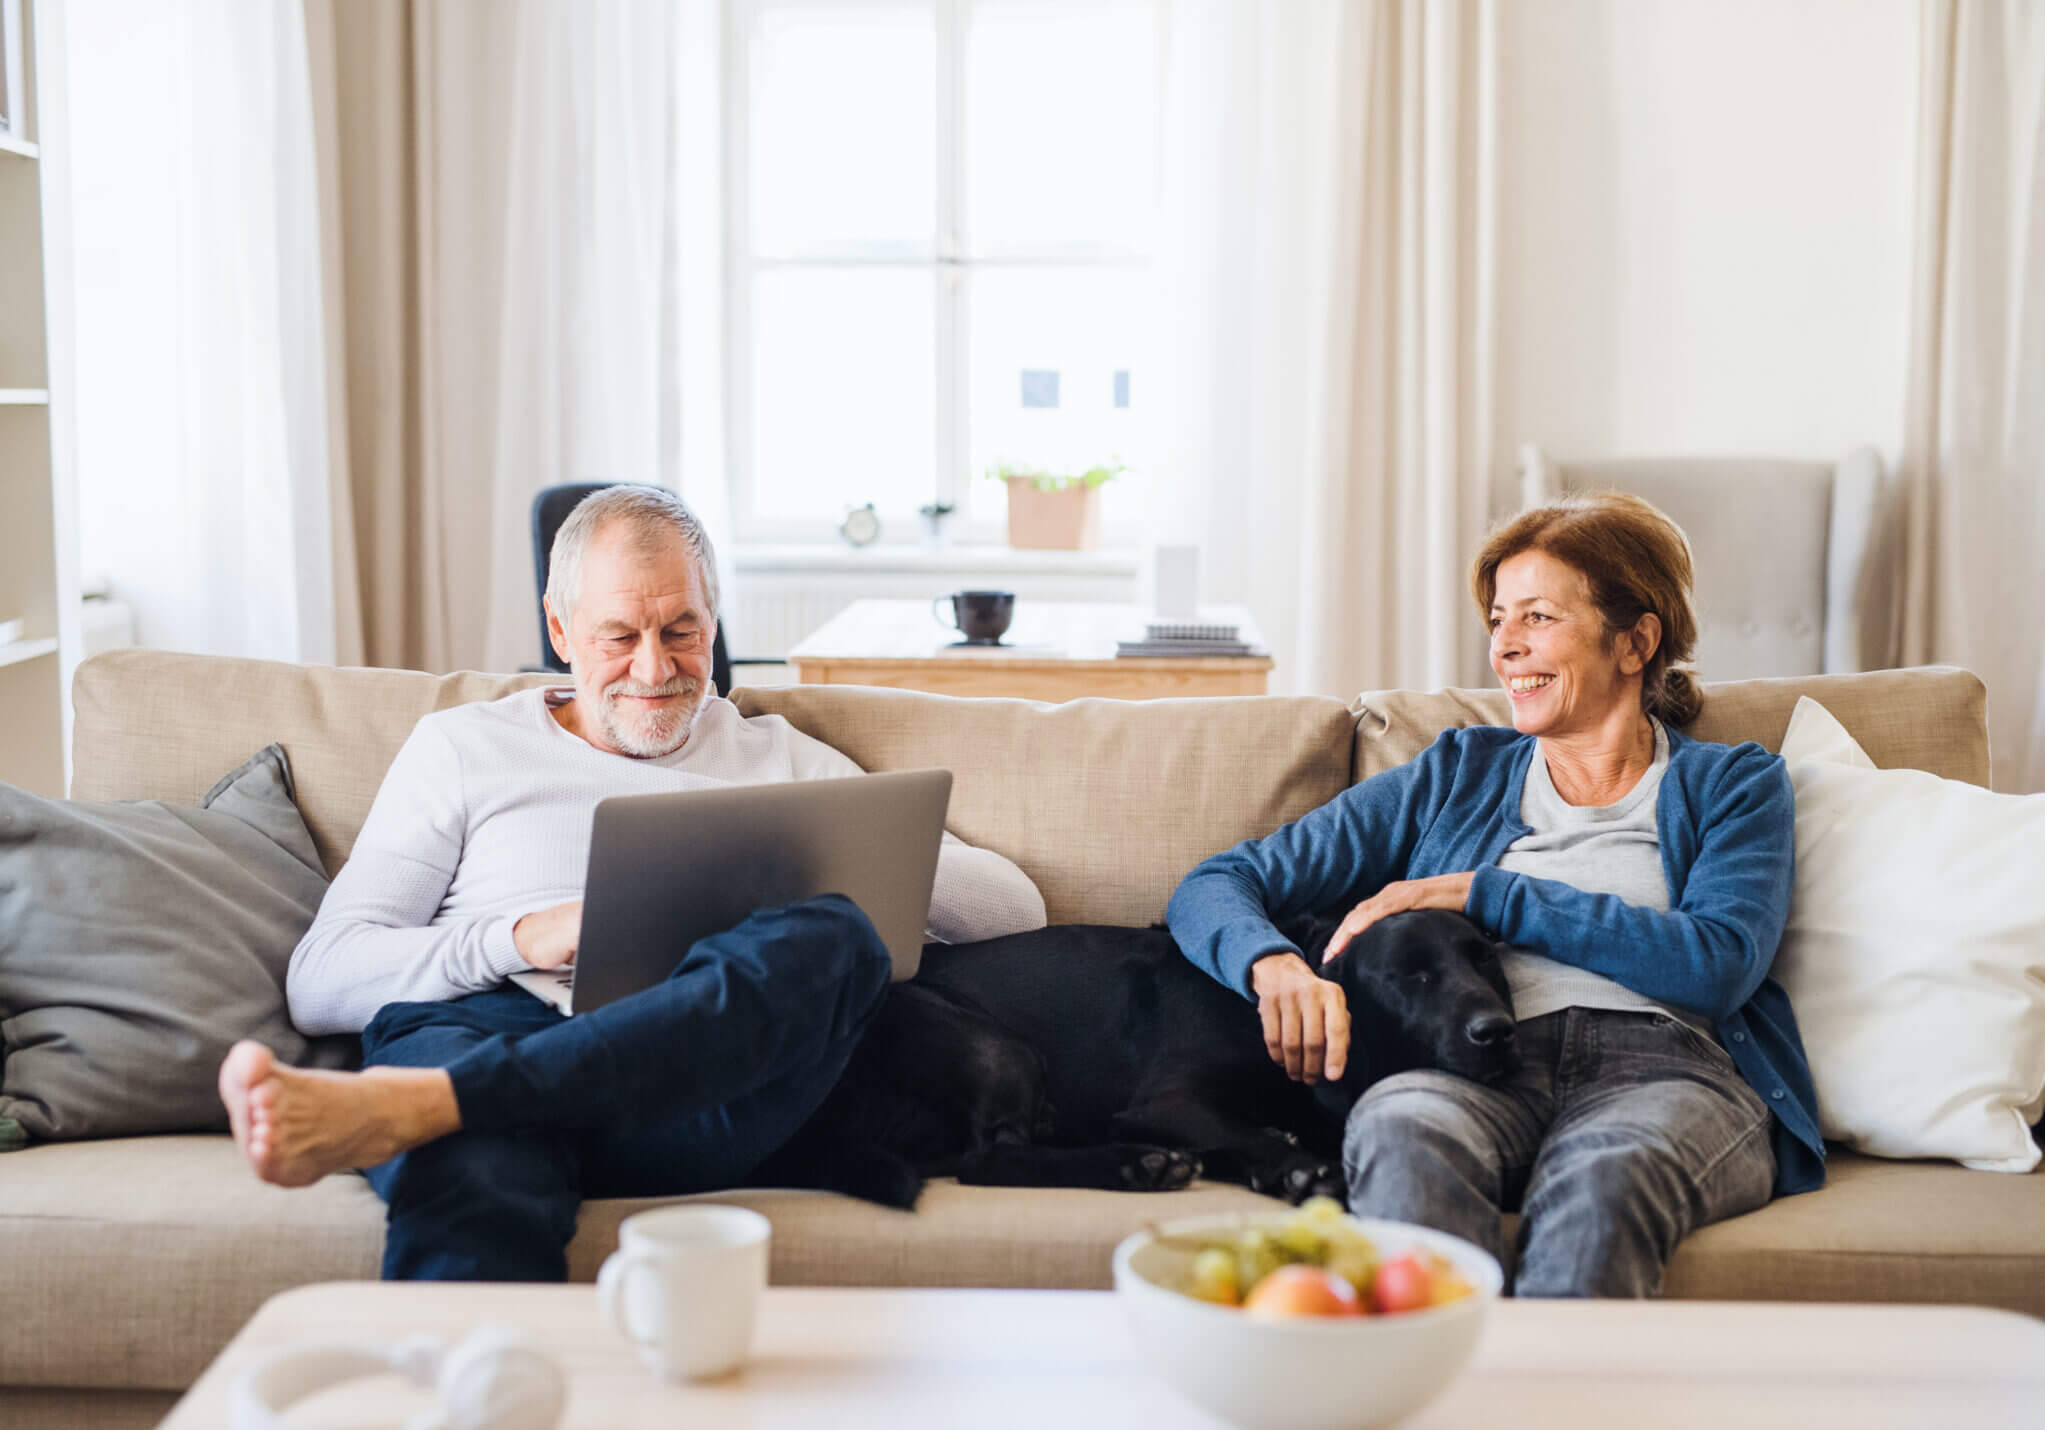 Man and woman sitting on couch with their dog between them. Man on computer, woman smiling at man.